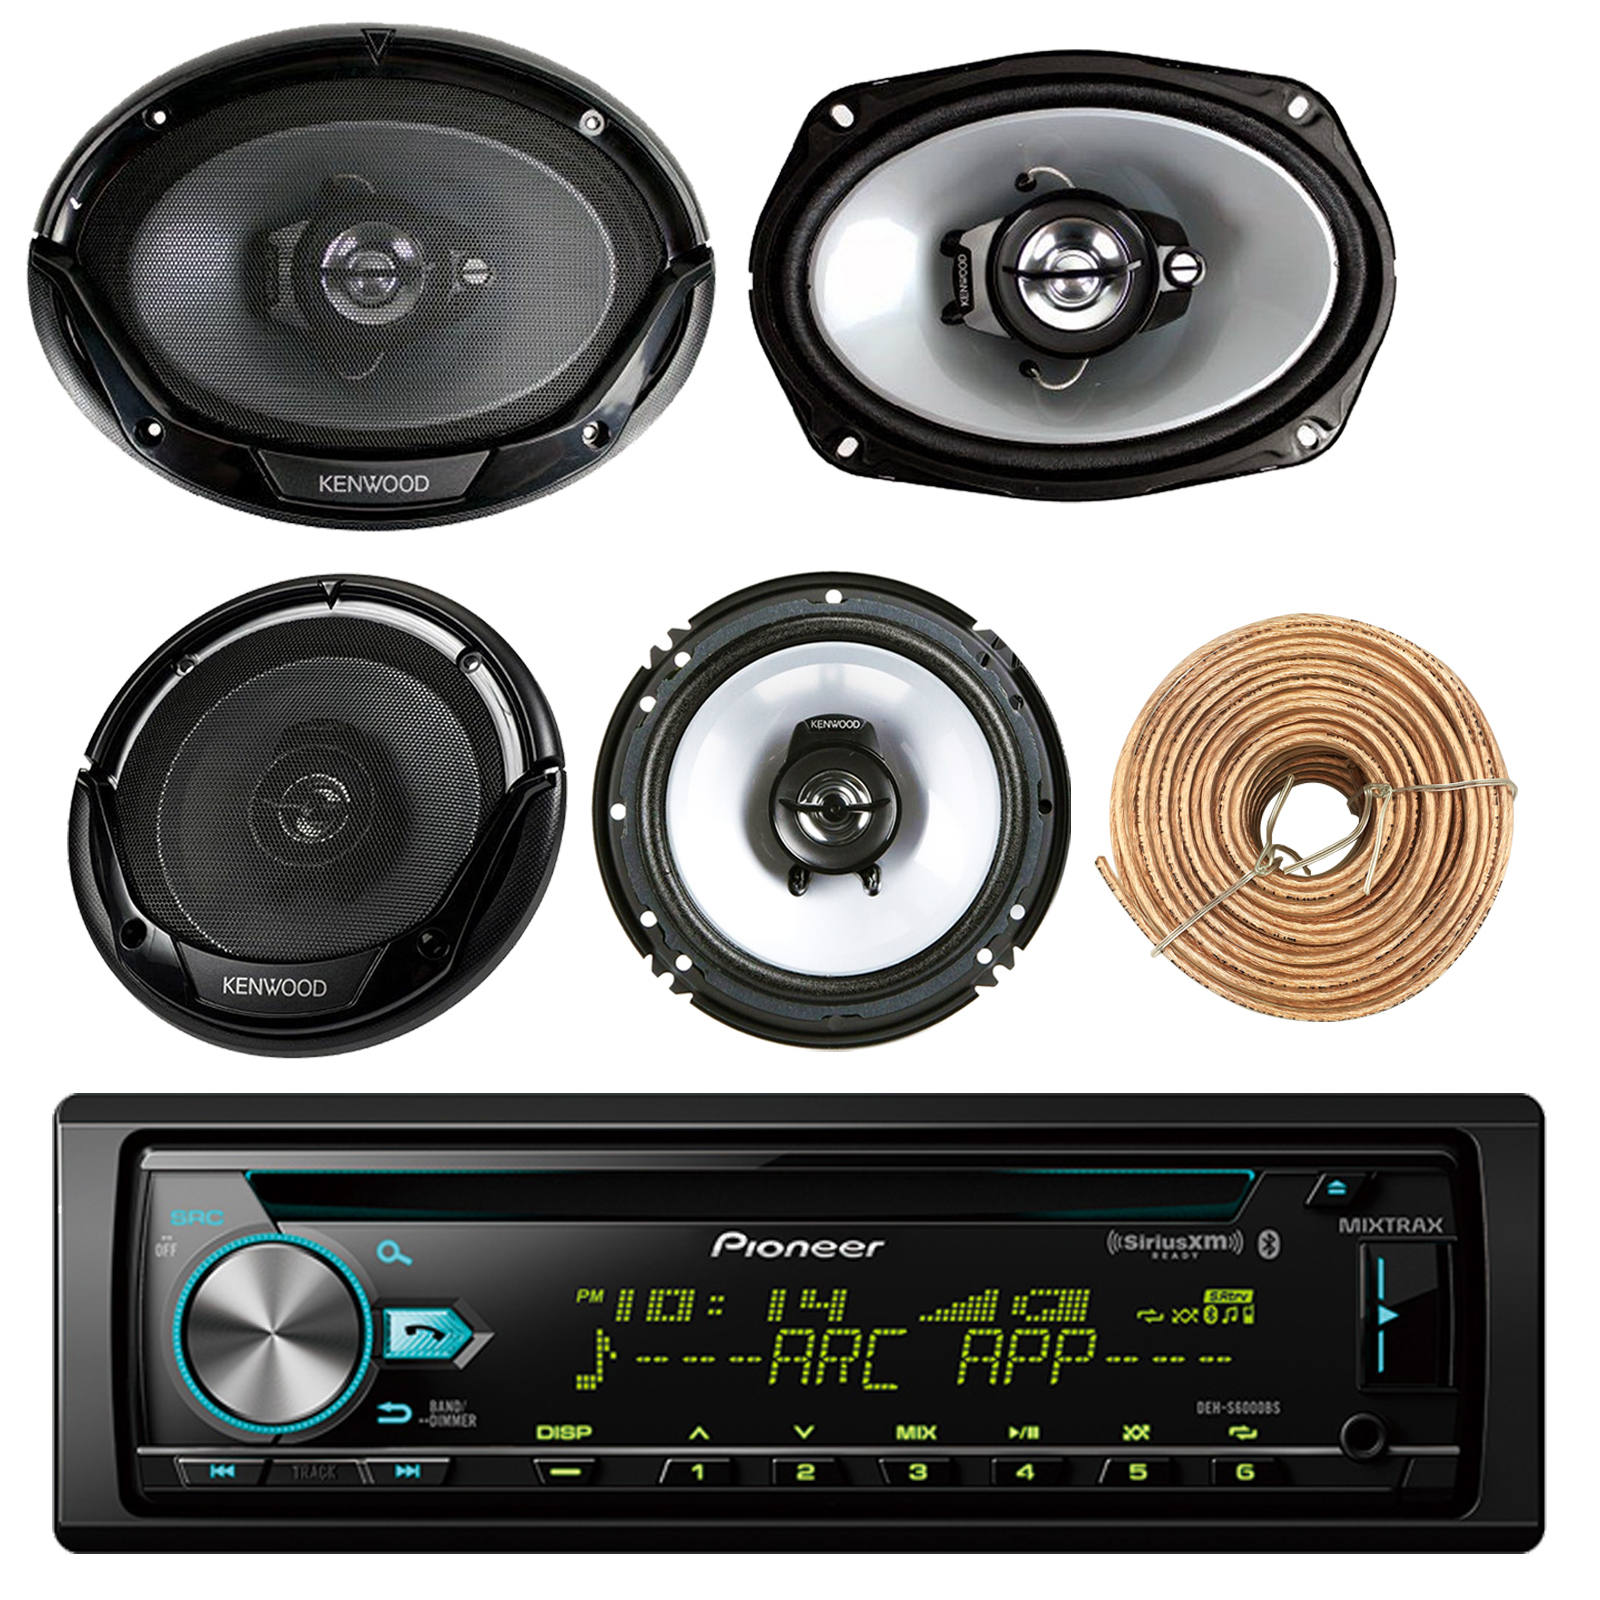 "Pioneer DEH-S6000BS Car CD Player Receiver Bluetooth USB AUX Radio - Bundle Combo With 2x Kenwood 6.5"" 2-Way Black Car Coaxial Speakers + 2x 6x9"" Inch 3-Way Speaker + Enrock 50 Foot 18g Speaker Wire"